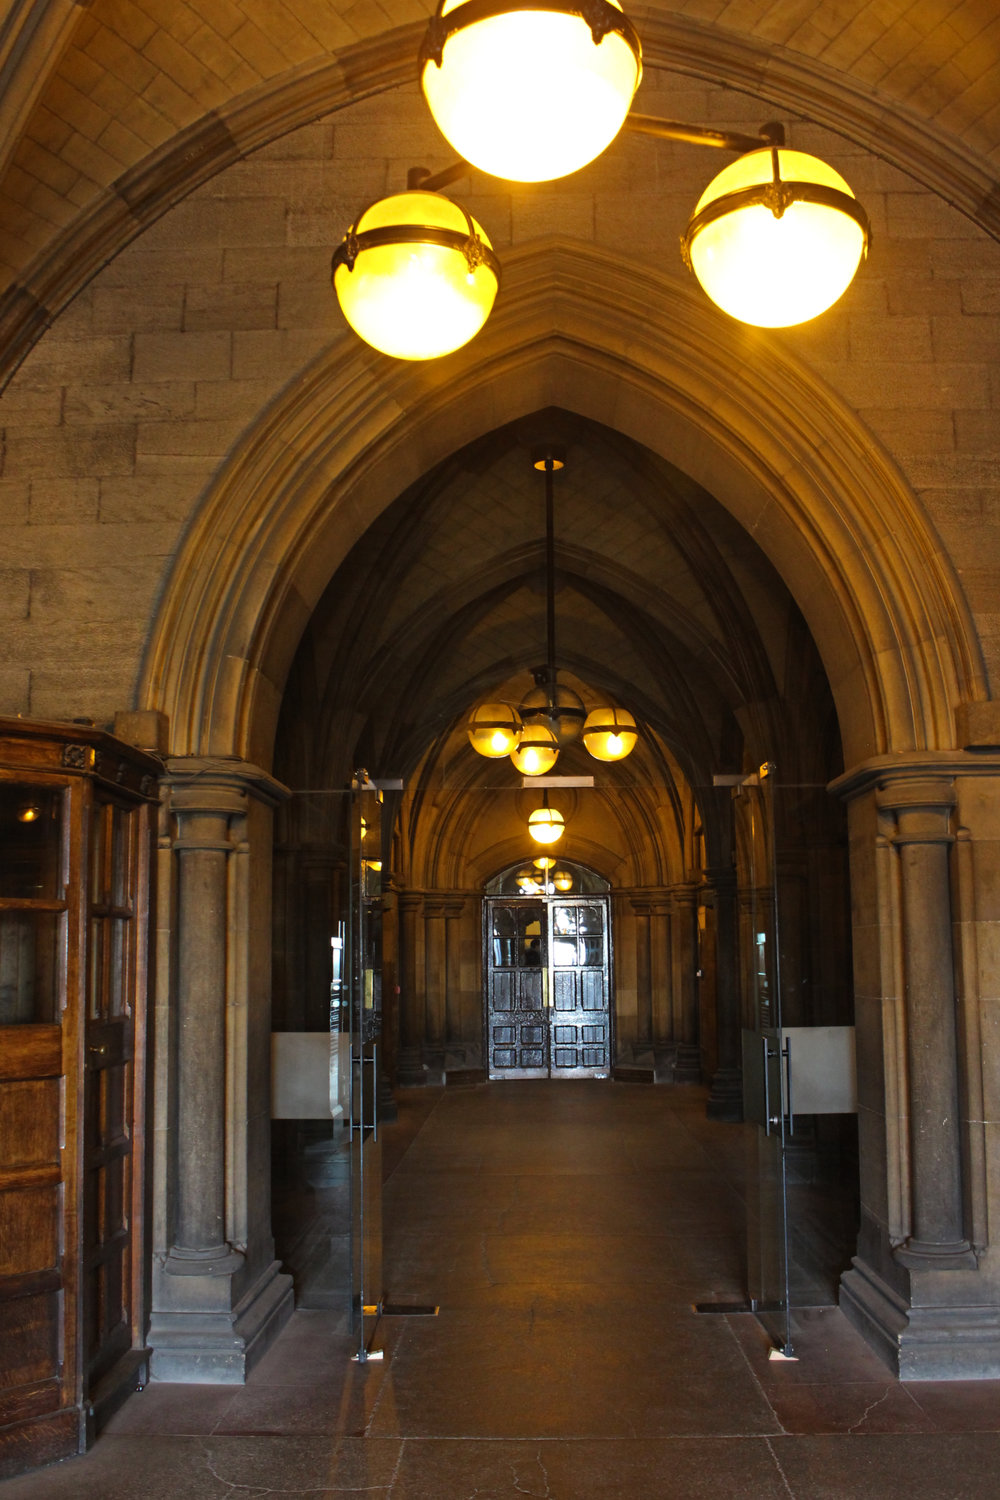 Hallway in the main building.